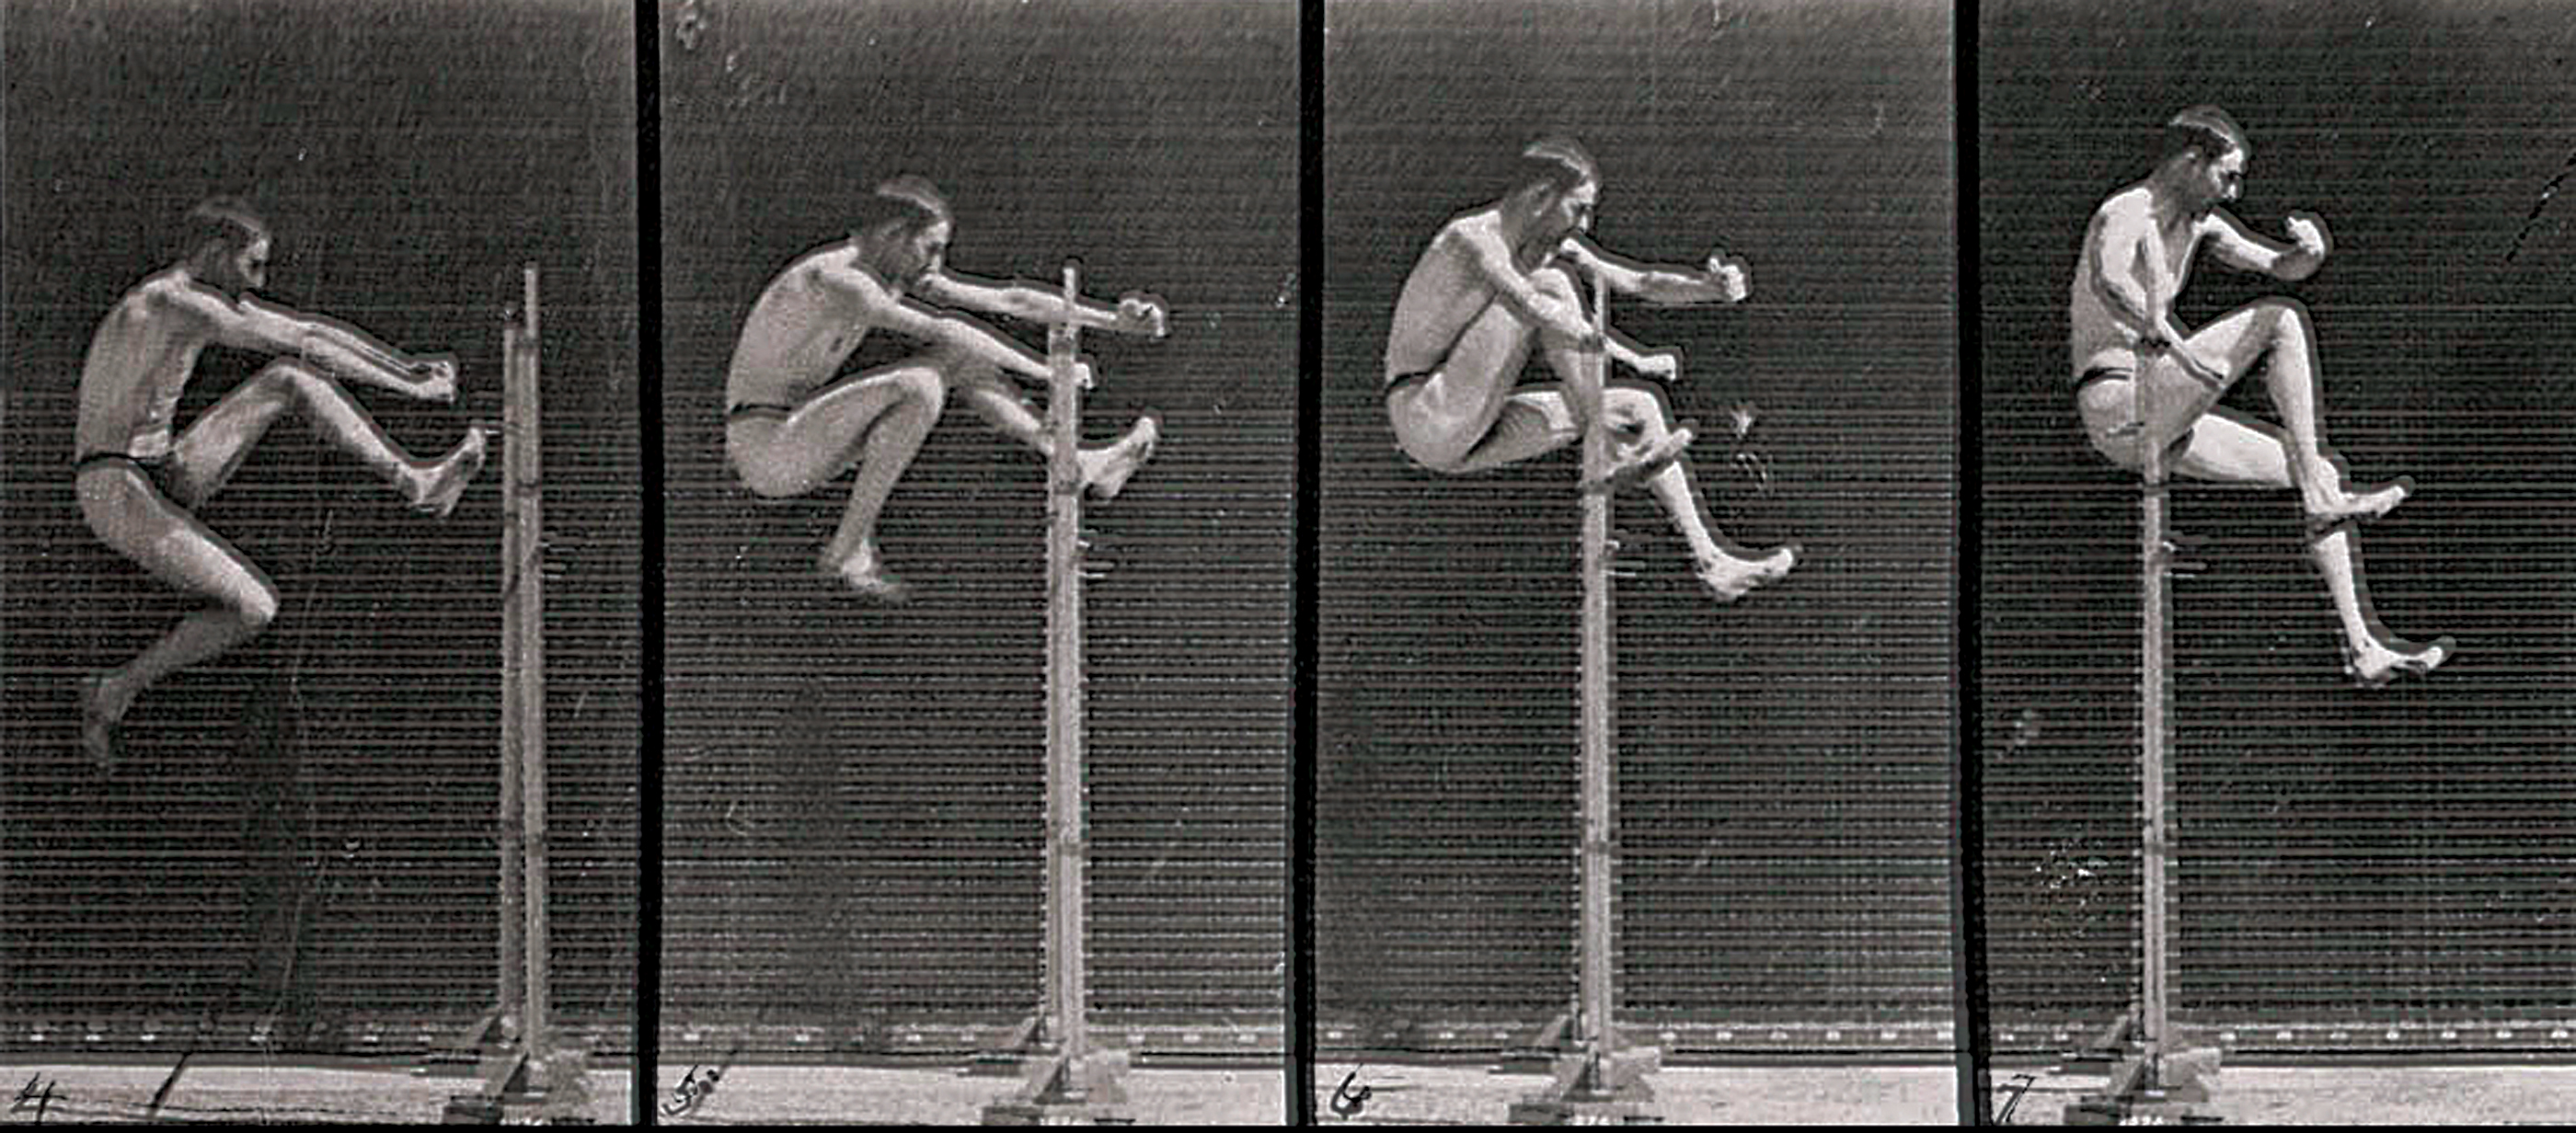 Man jumping, time-lapse photographs from the Animal Locomotion series, by Eadweard Muybridge, c. 1885. The Wellcome Trust, London.